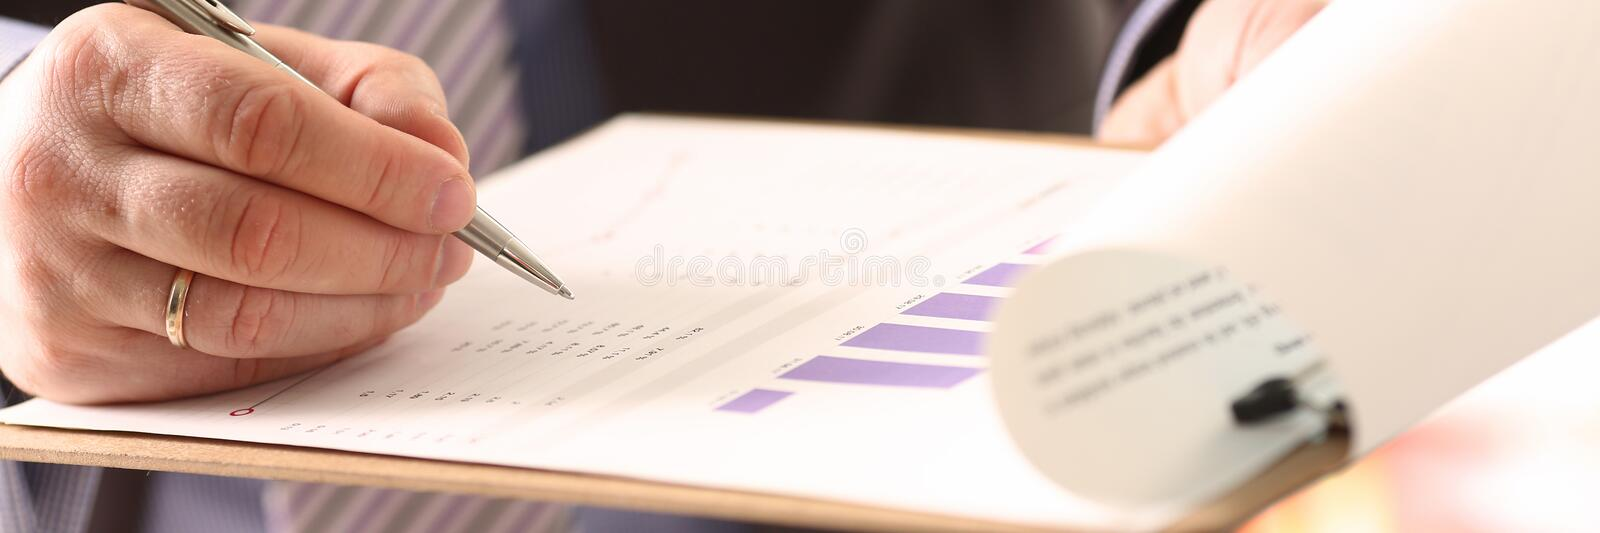 Financi?le Auditor Signing Calculating Document stock afbeelding